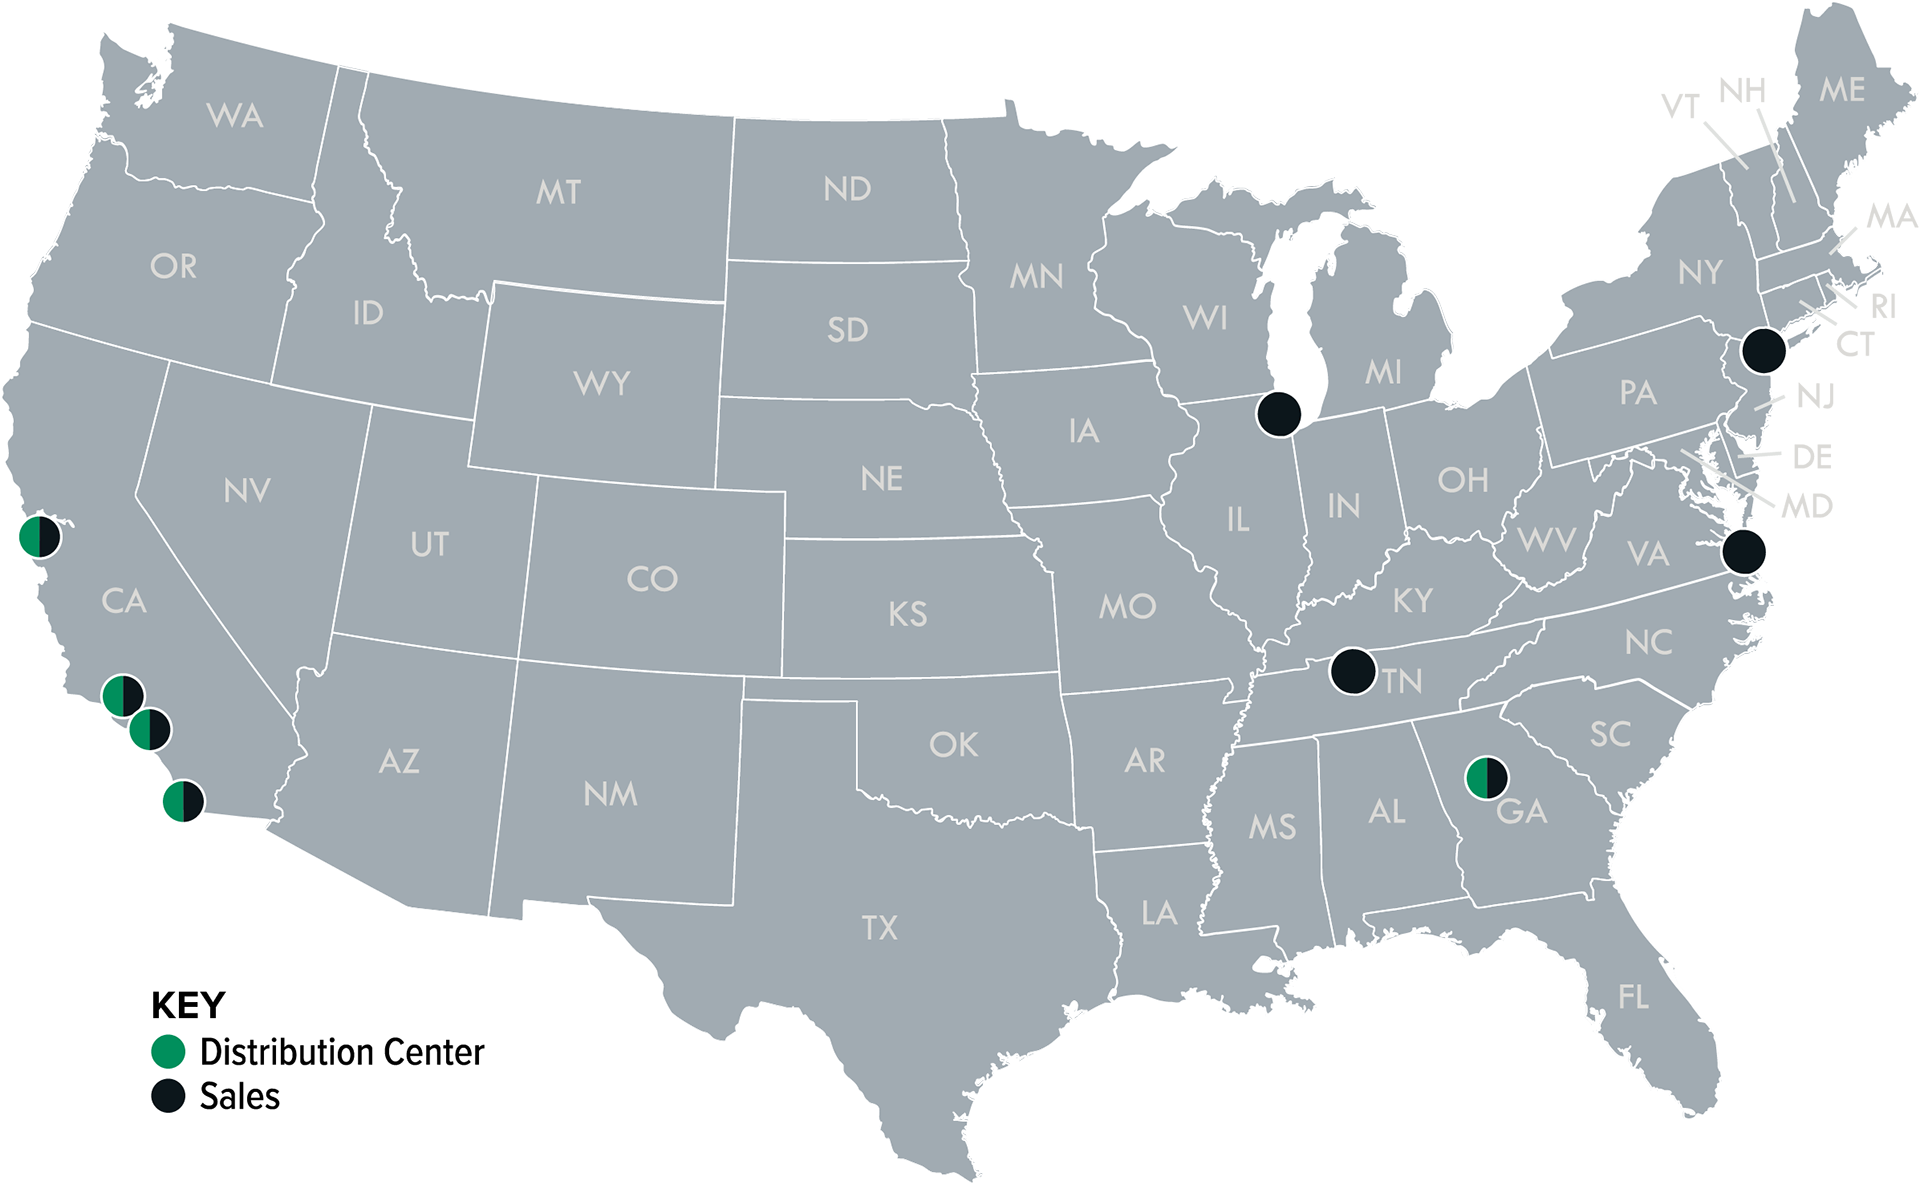 Office Locations And Contact Info For Helpful Lighting Experts - Atlanta on the us map